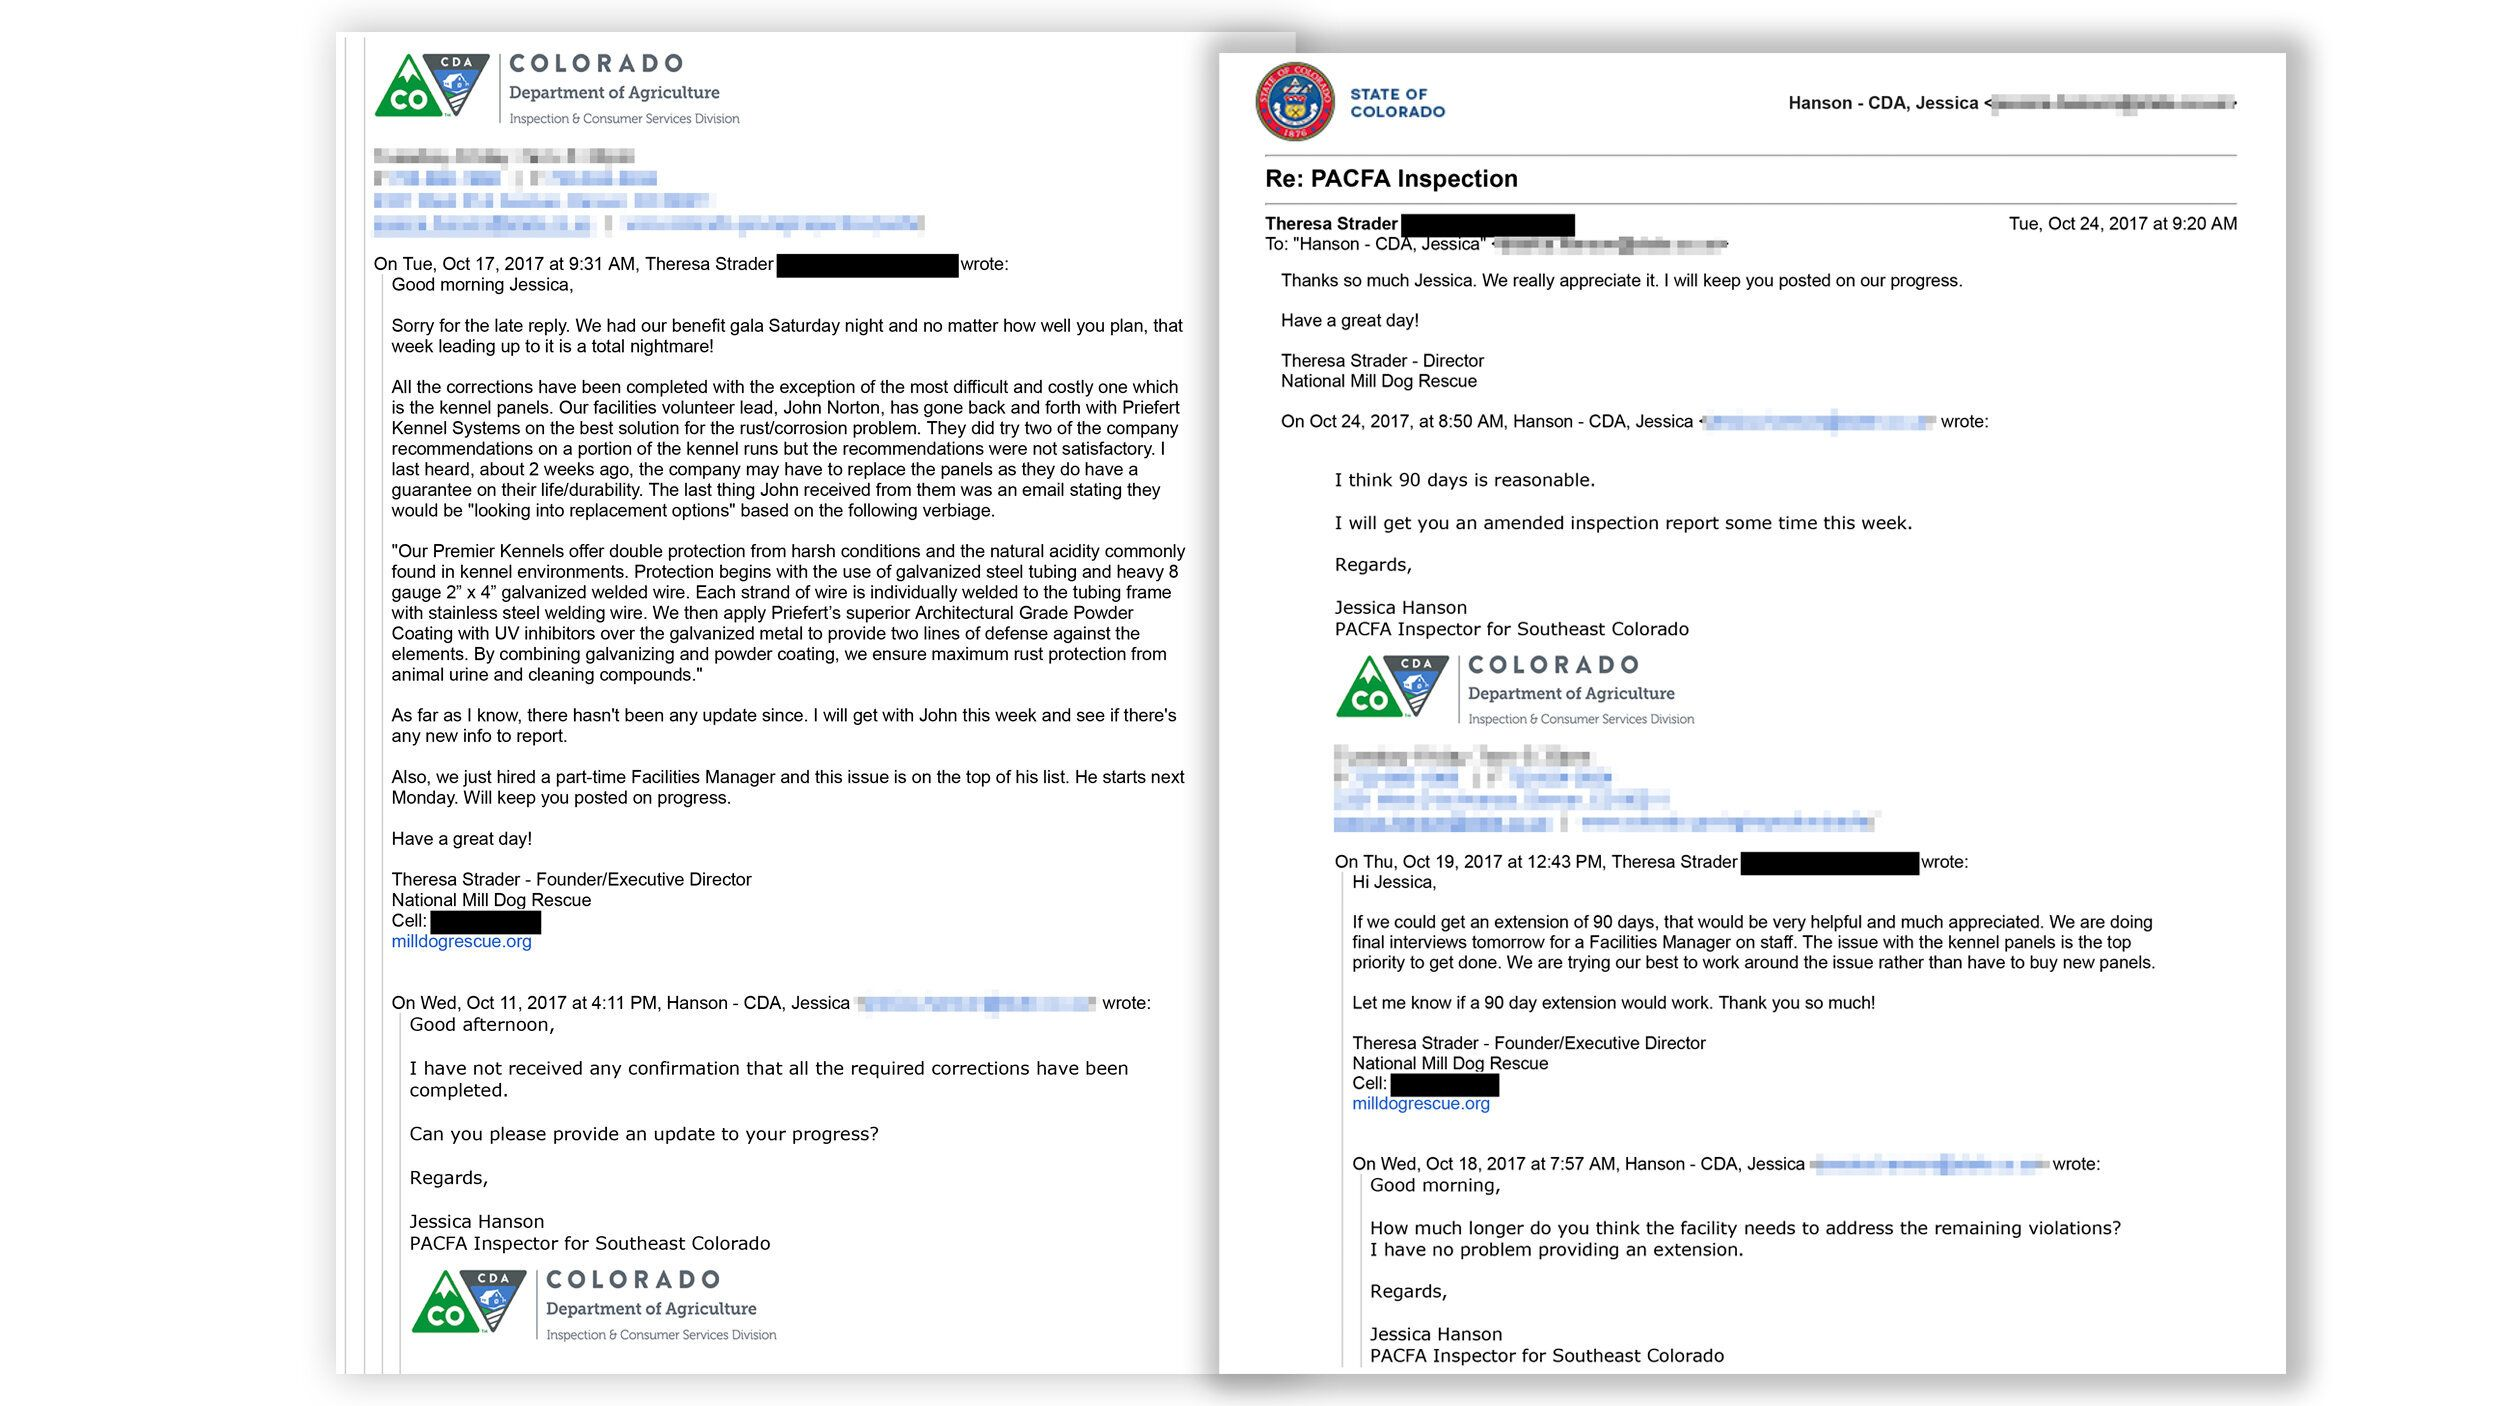 An email exchange about certificates of veterinary inspection between Theresa Schrader and Colorado state regulators.